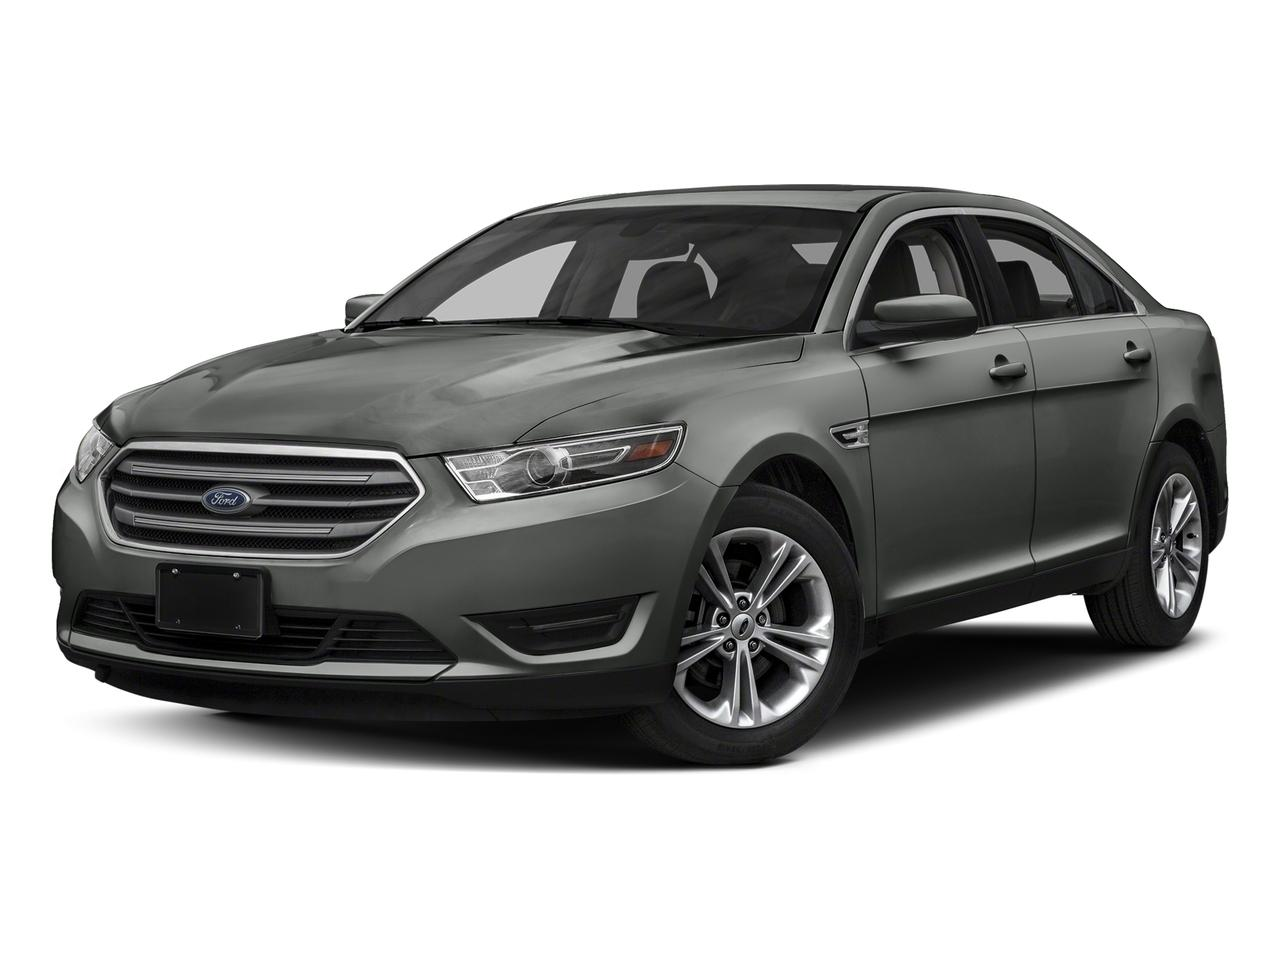 2018 Ford Taurus Vehicle Photo in Plainfield, IL 60586